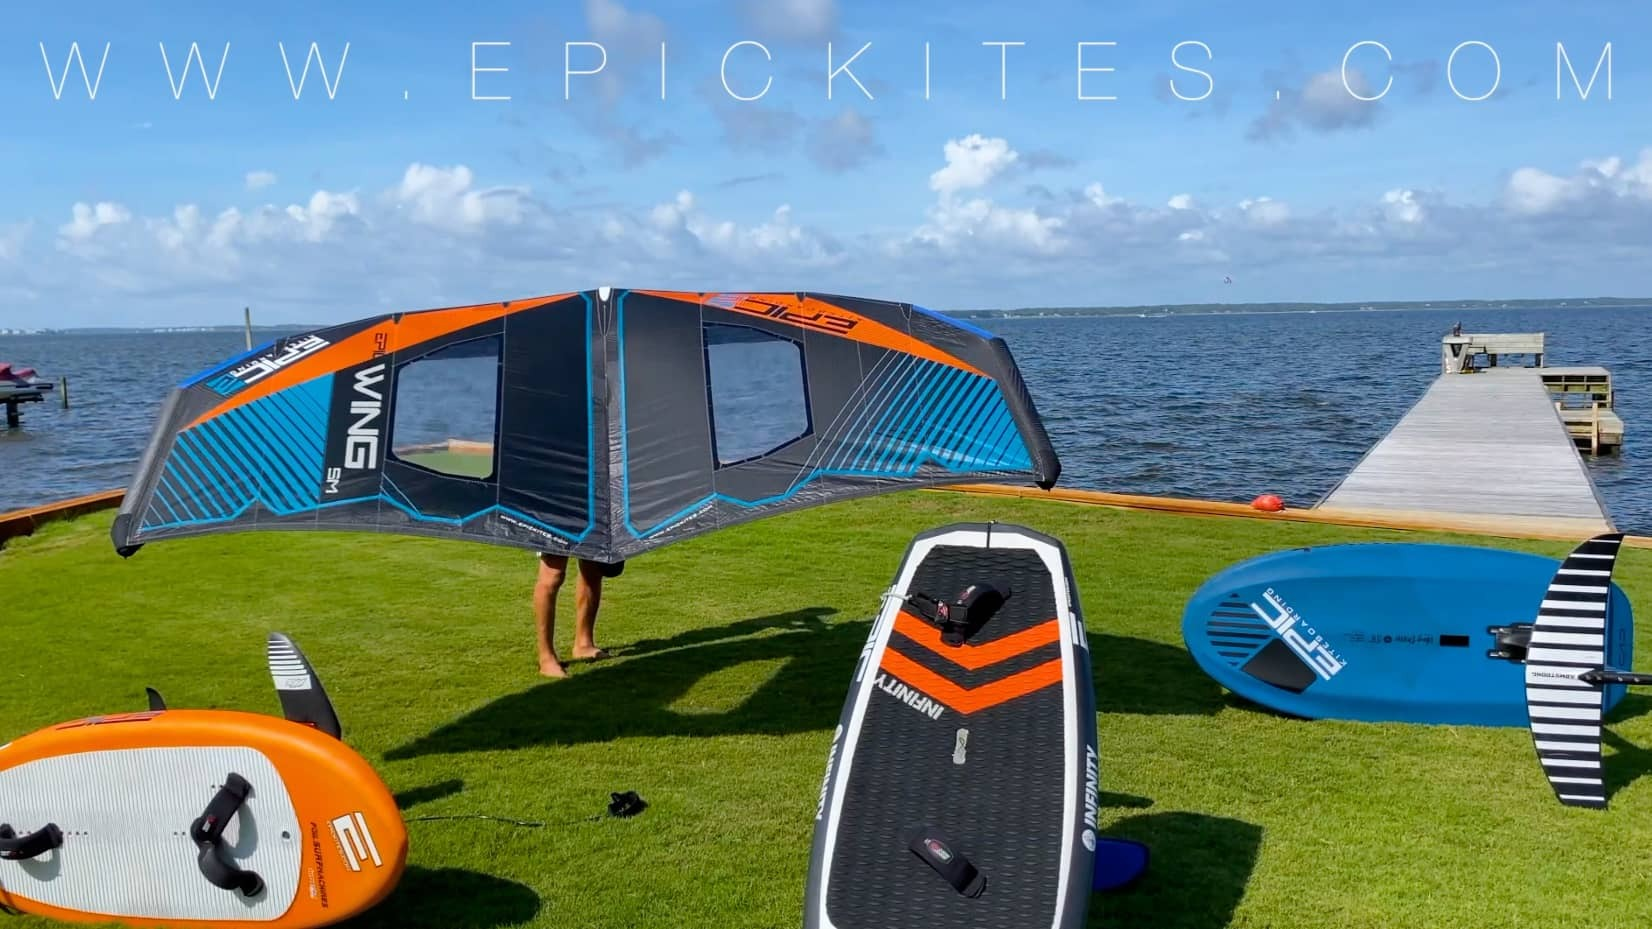 Cameron trying to Wing - with Epic Kites Kiteboarding